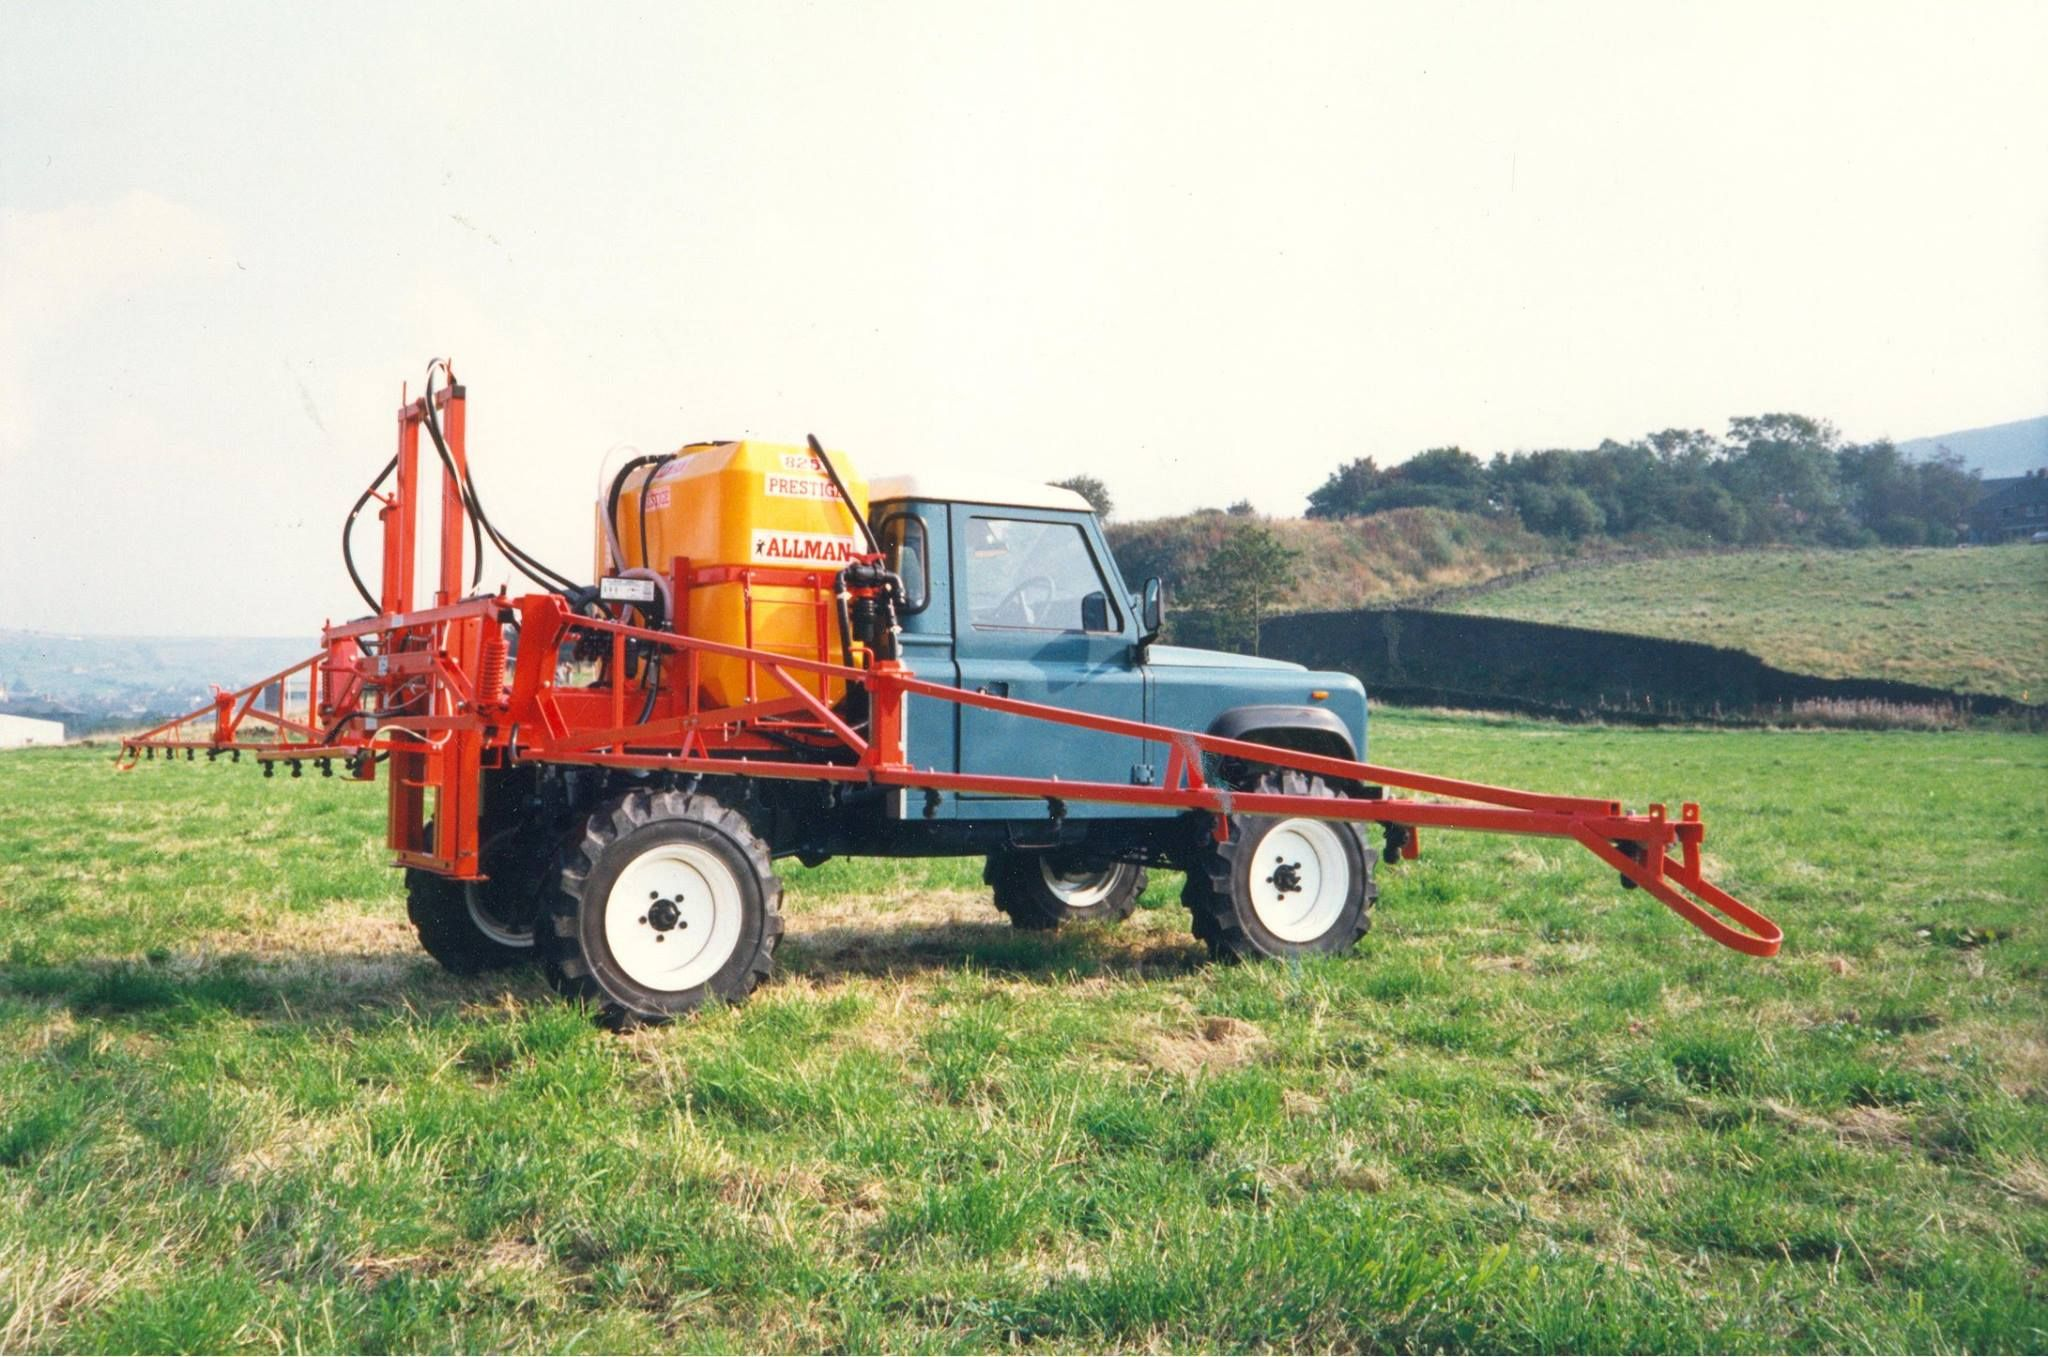 Land Rover 90 Circa Late 1980s Early 90s Is Fitted With An Allman Prestige 825 Sprayer With 18m Booms Is This One Of The Ag Ro Land Rover Land Rover Defender